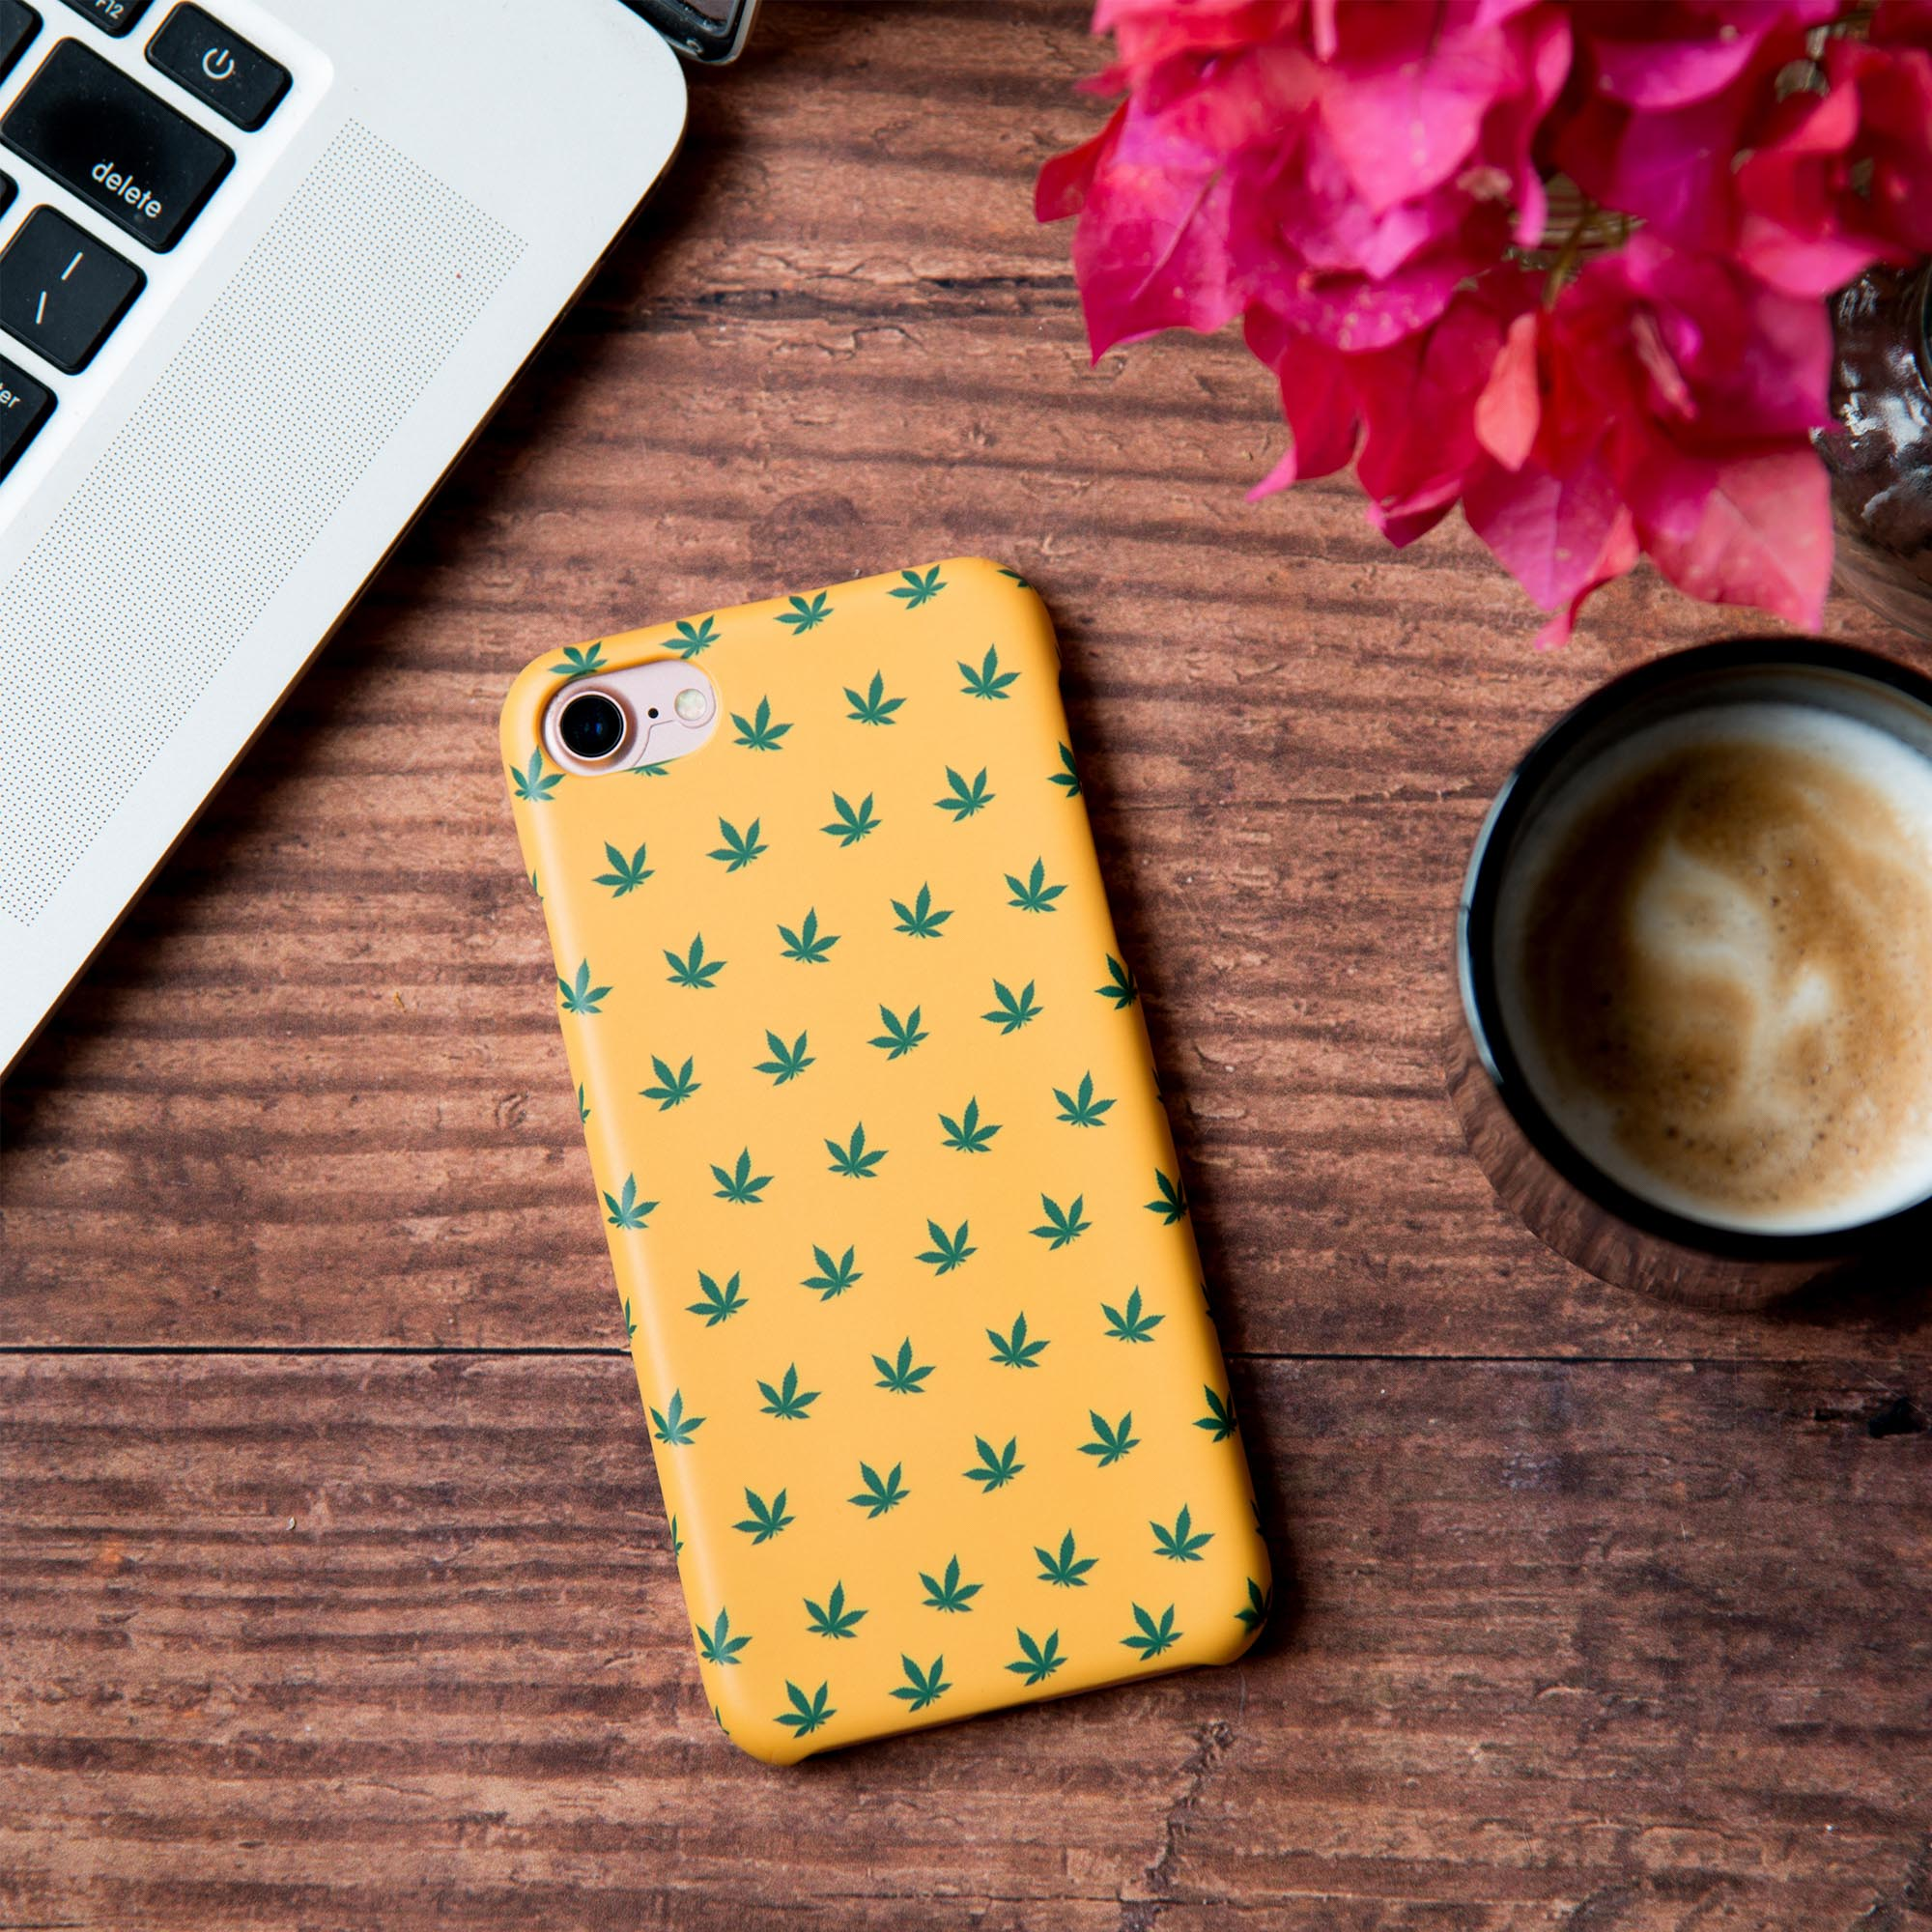 Marijuana Iphone 7 Plus Cover